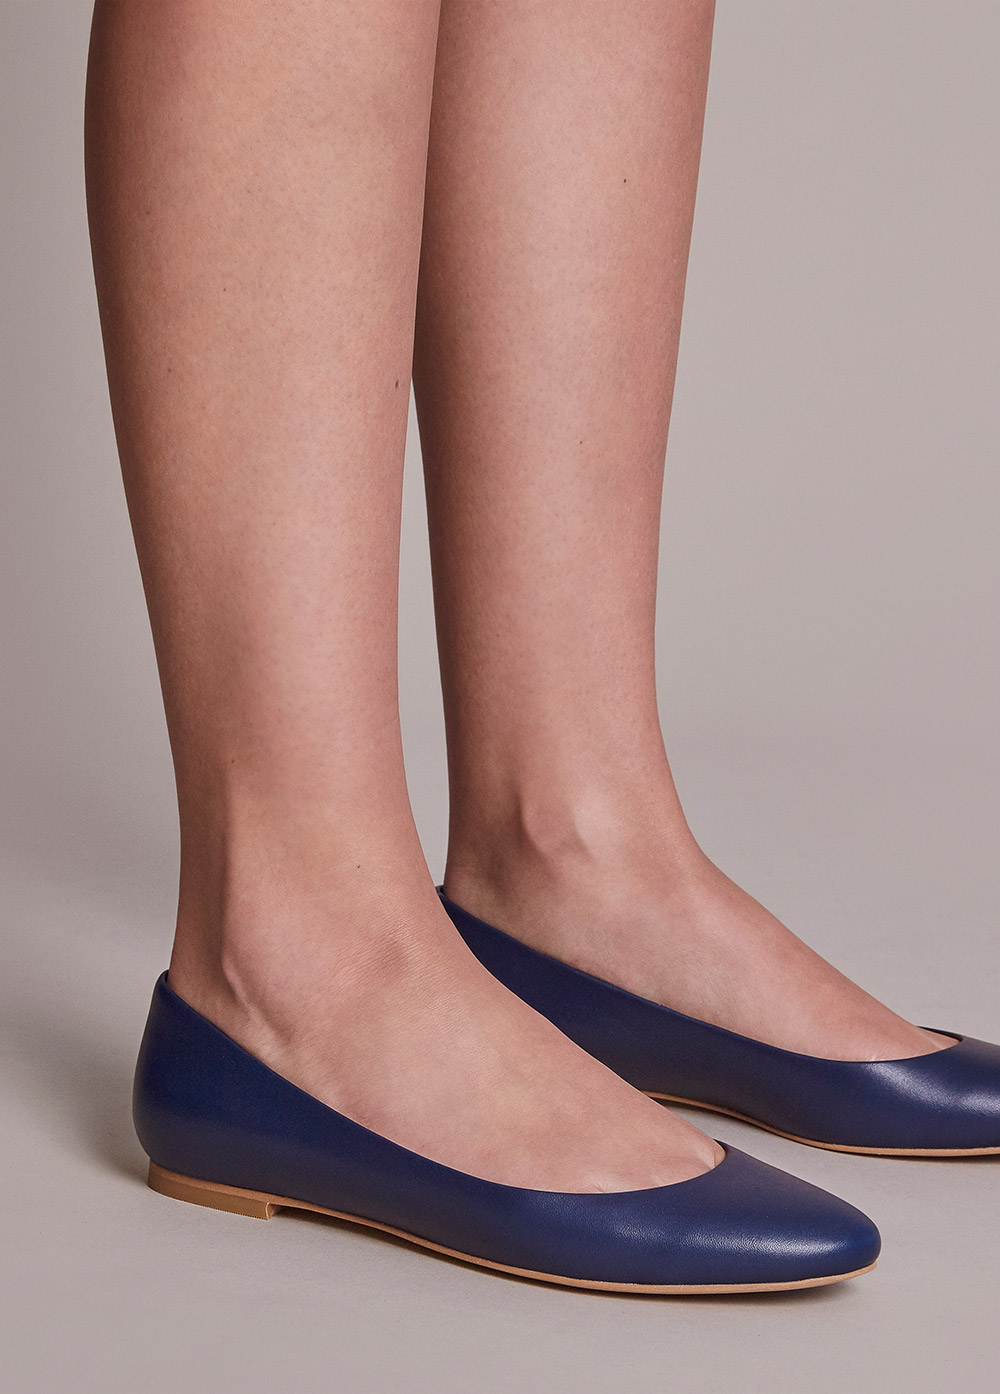 Ballet flats and pointed toe flats